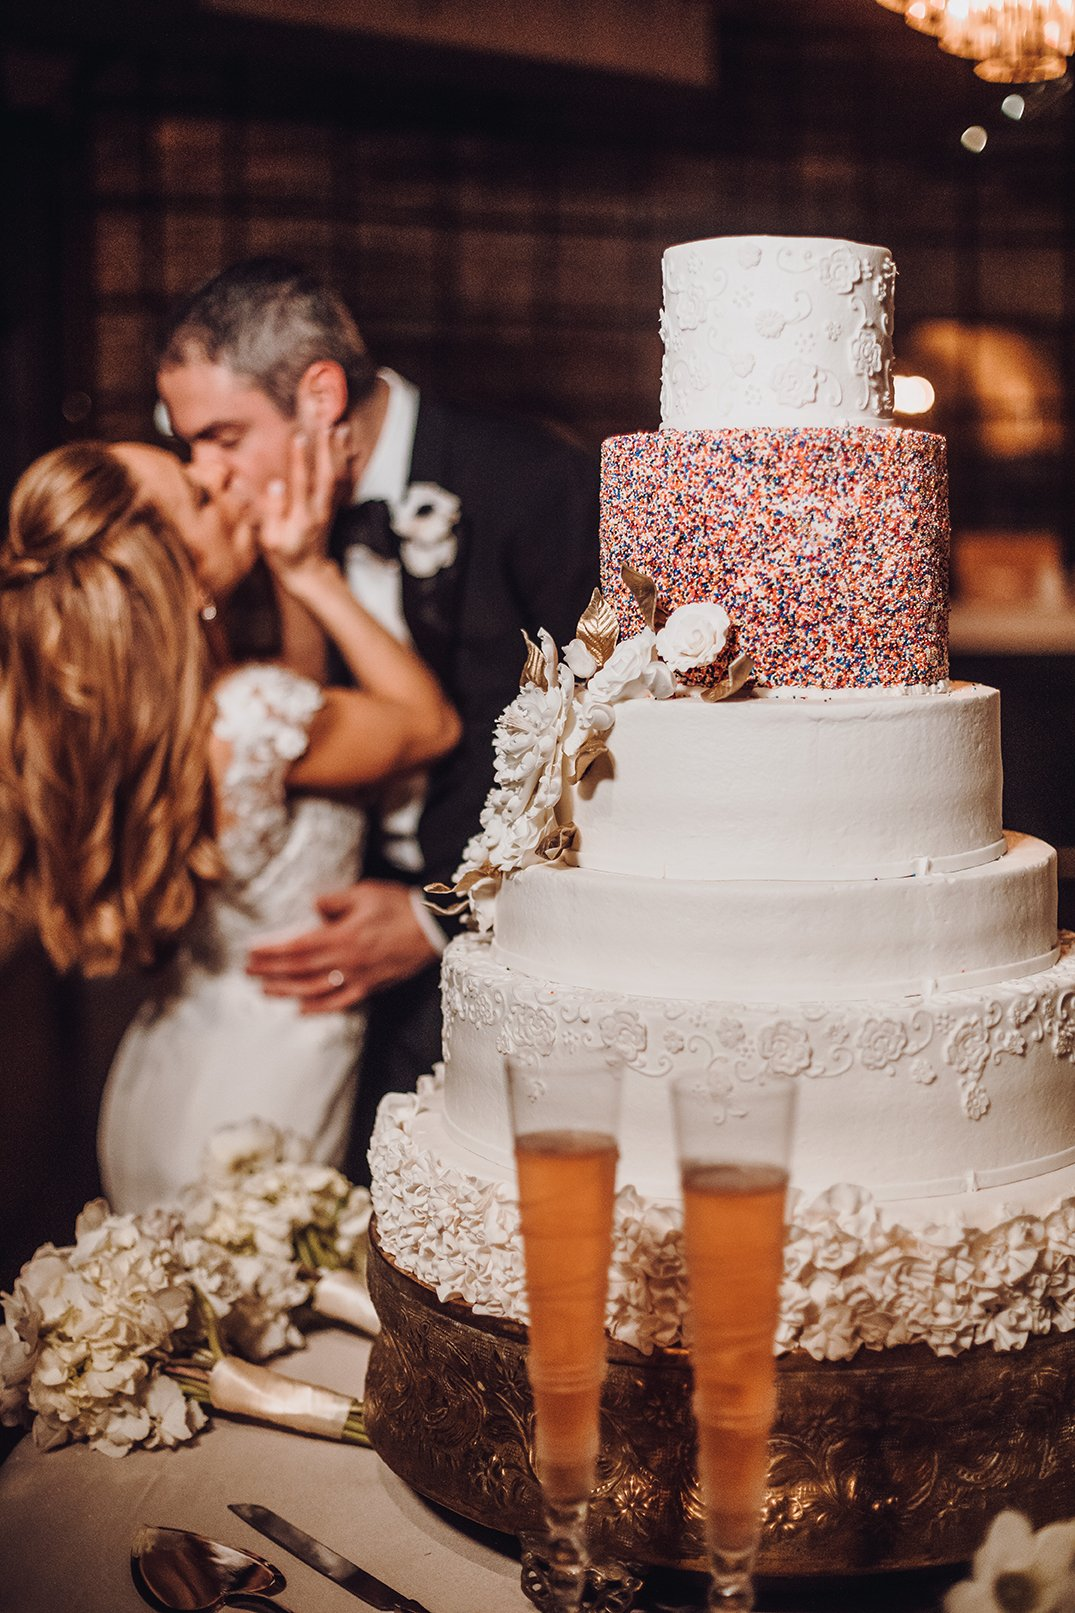 Houston Wedding, Wedding Cake, Sprinkle, White Cake, Cake Inspiration